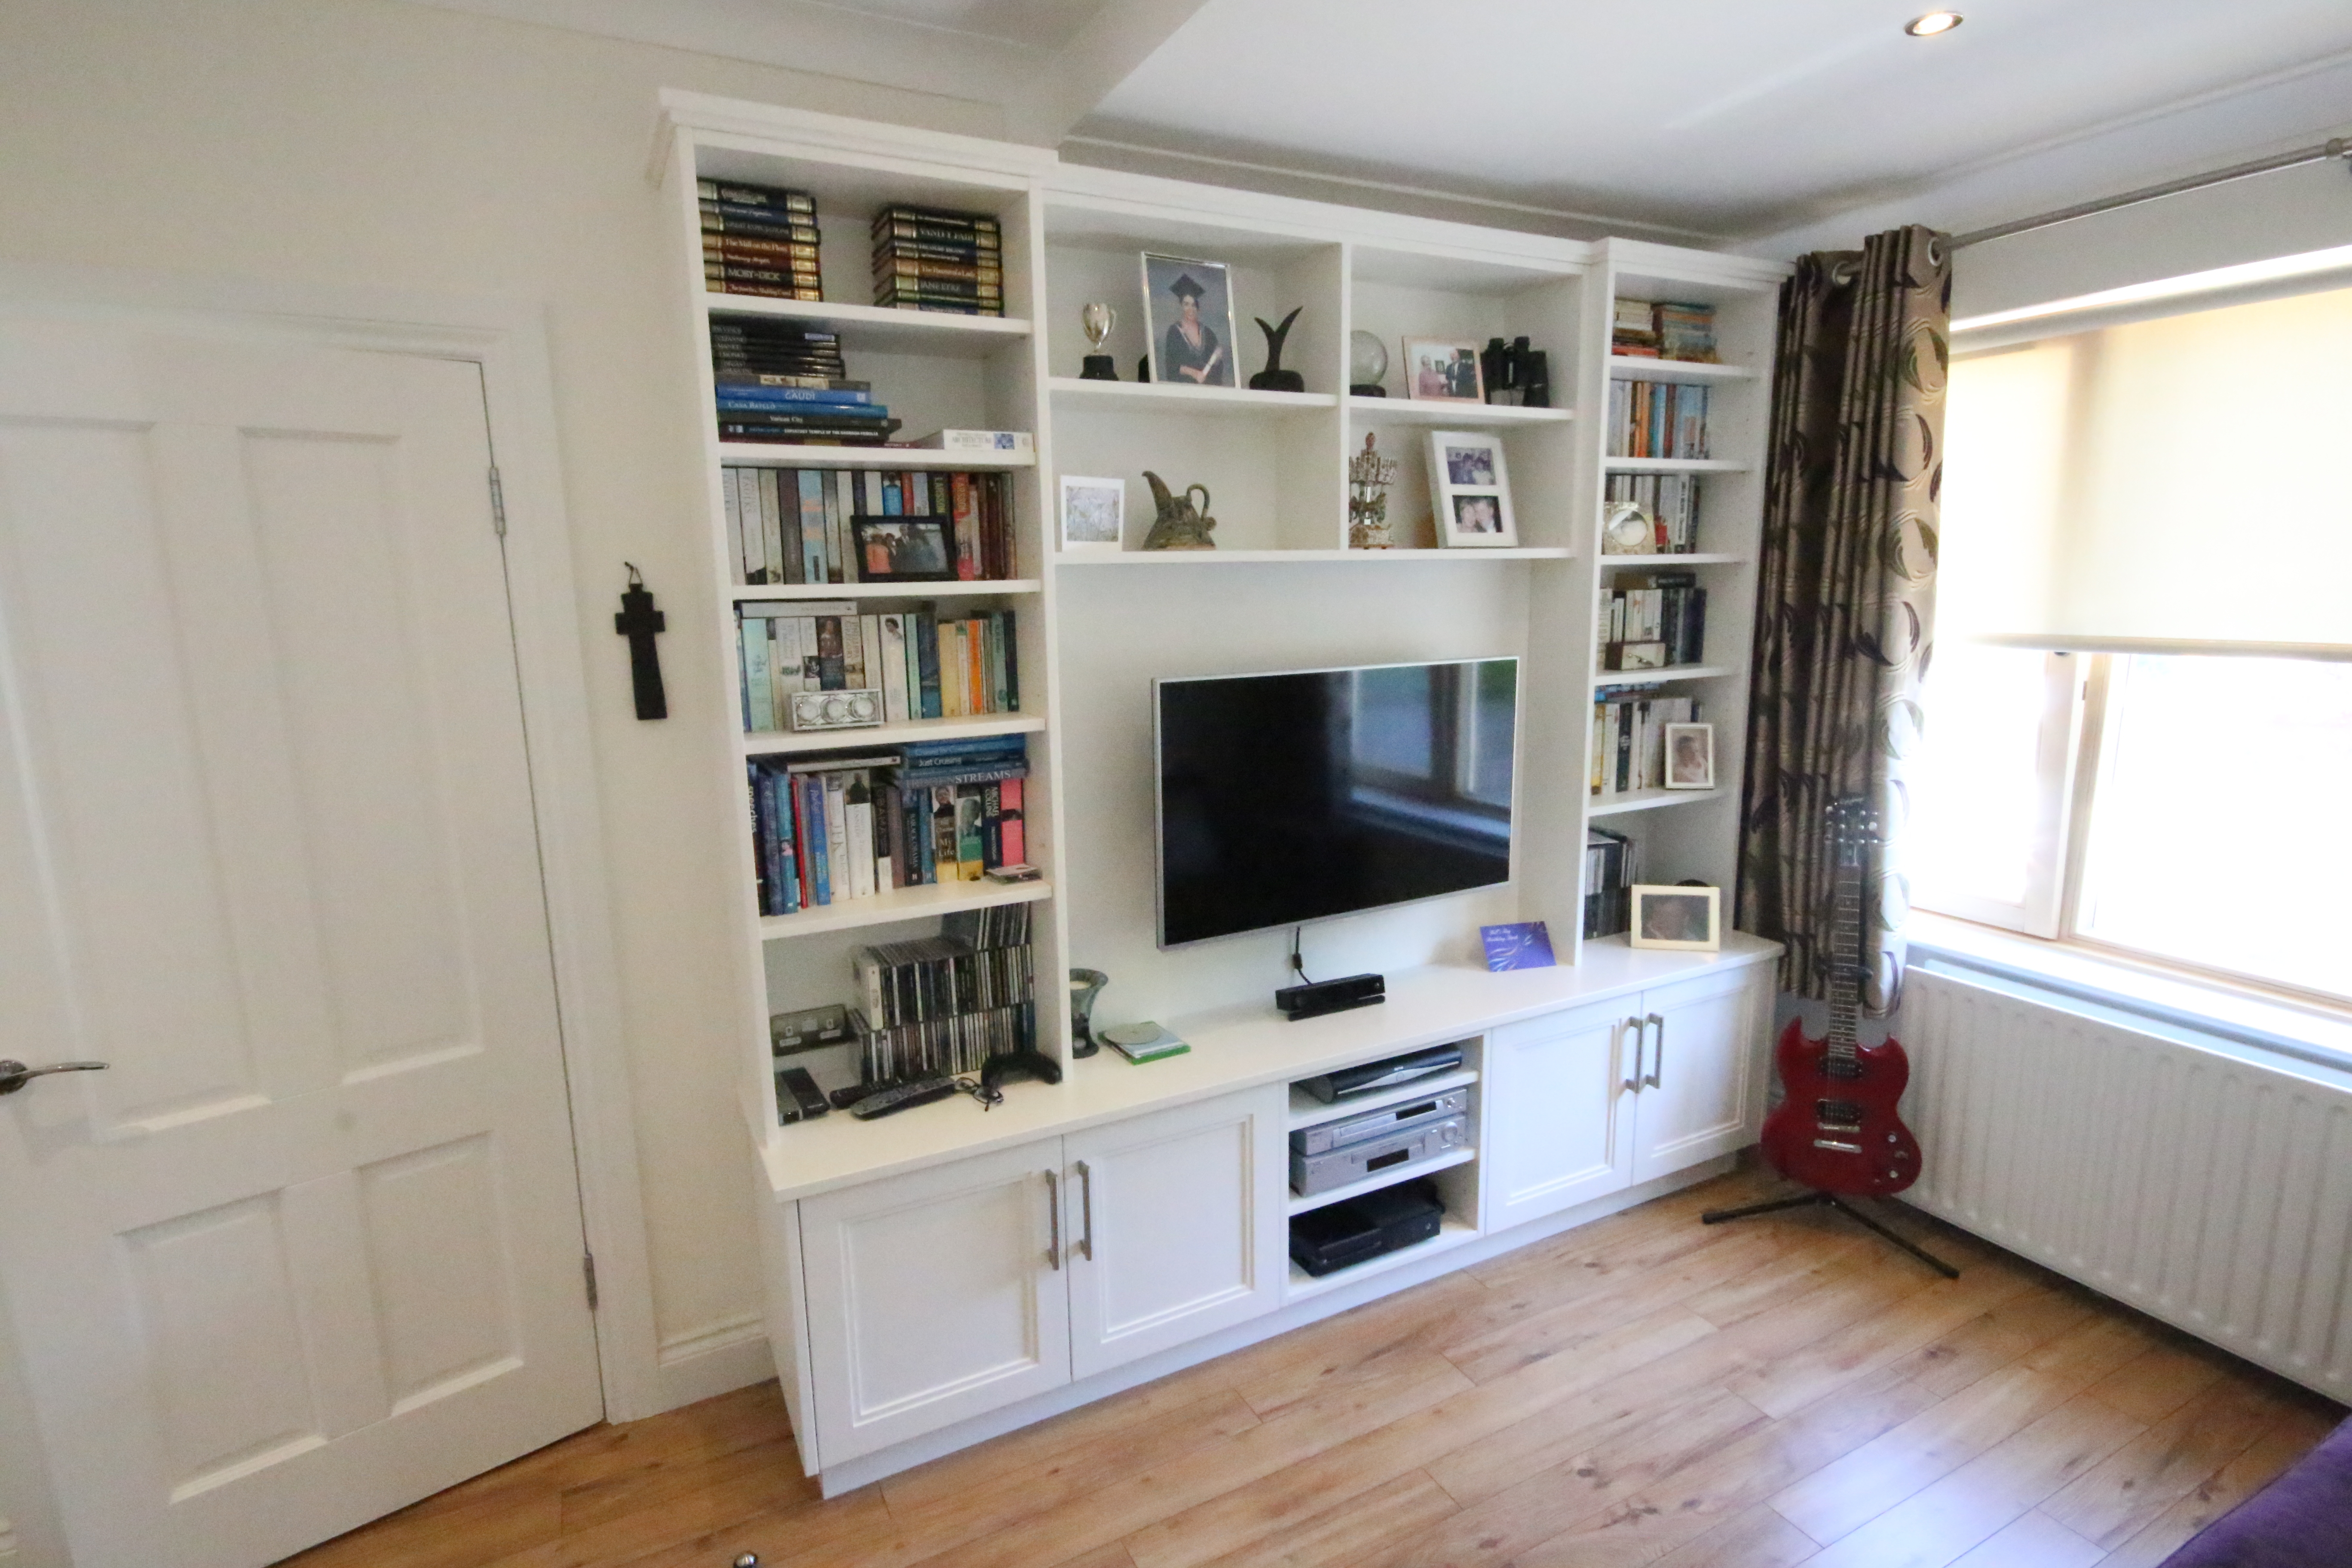 Enigma Design Tv Unit In Stepped Shaker Style Throughout Bespoke Tv Unit (View 11 of 15)